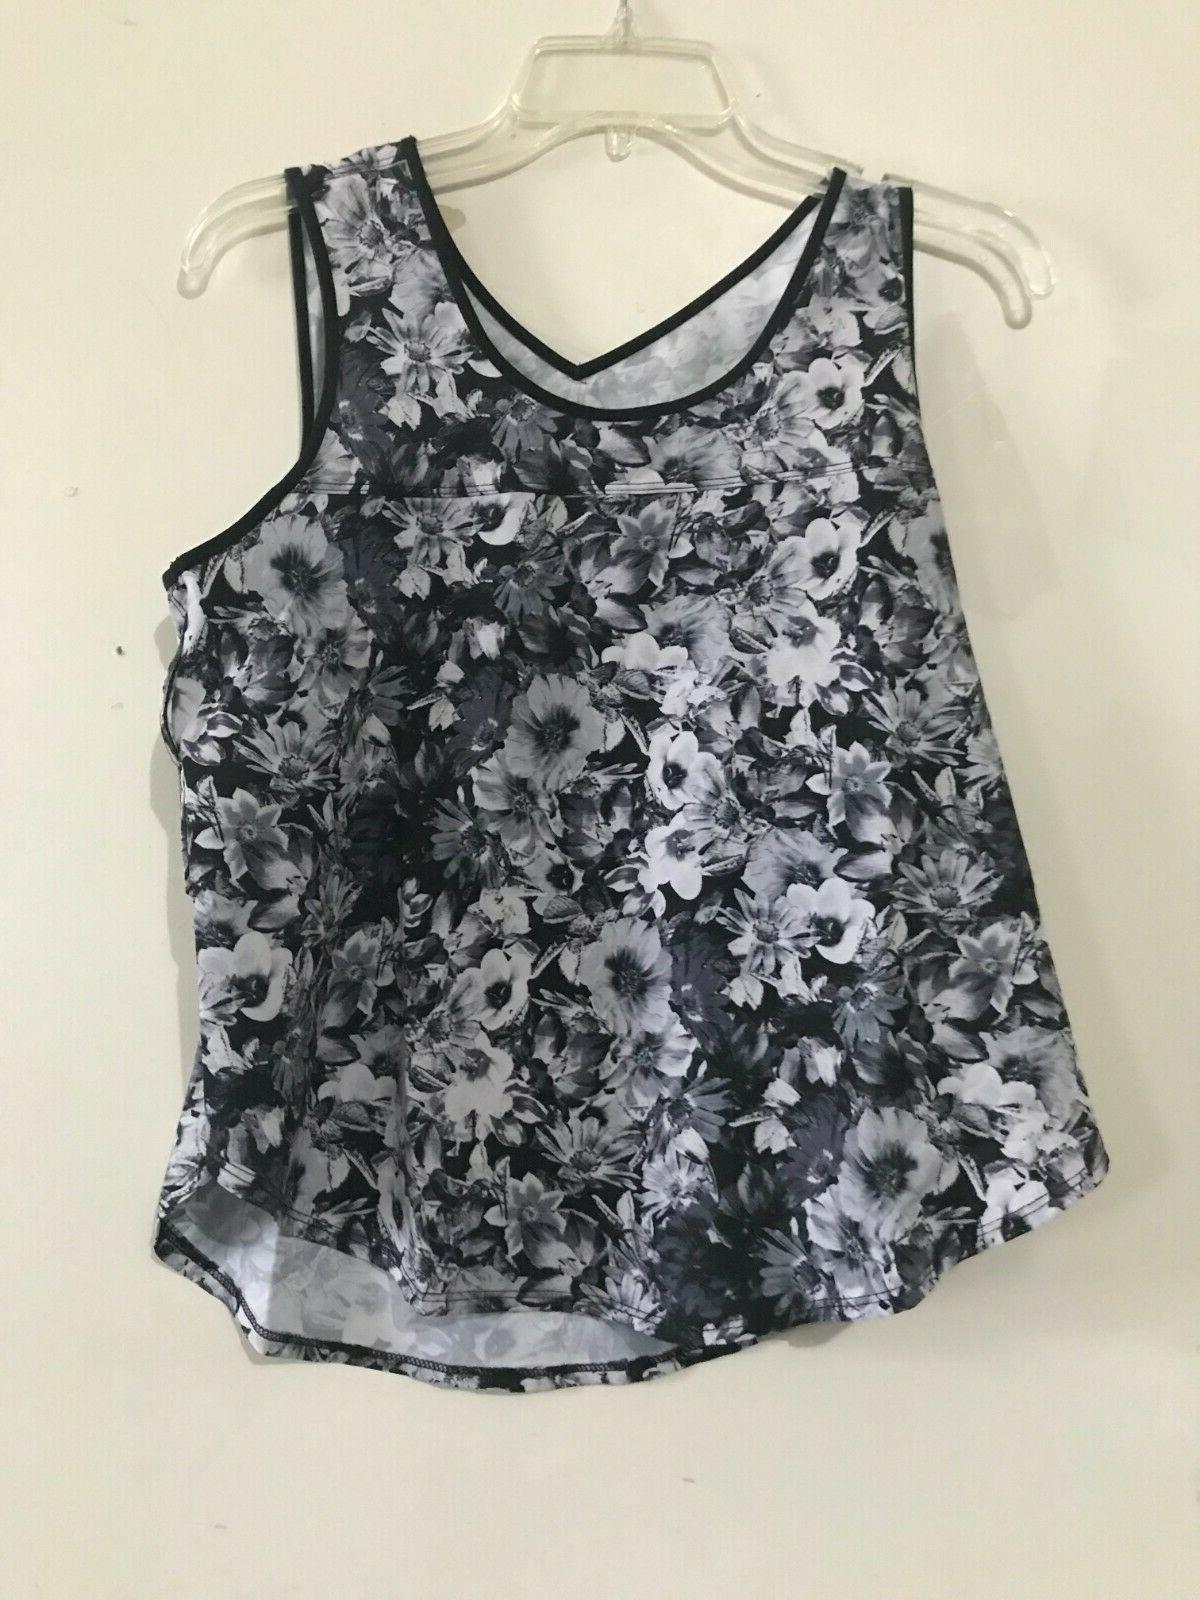 90 By Size Floral Athletic Apparel Workout Top